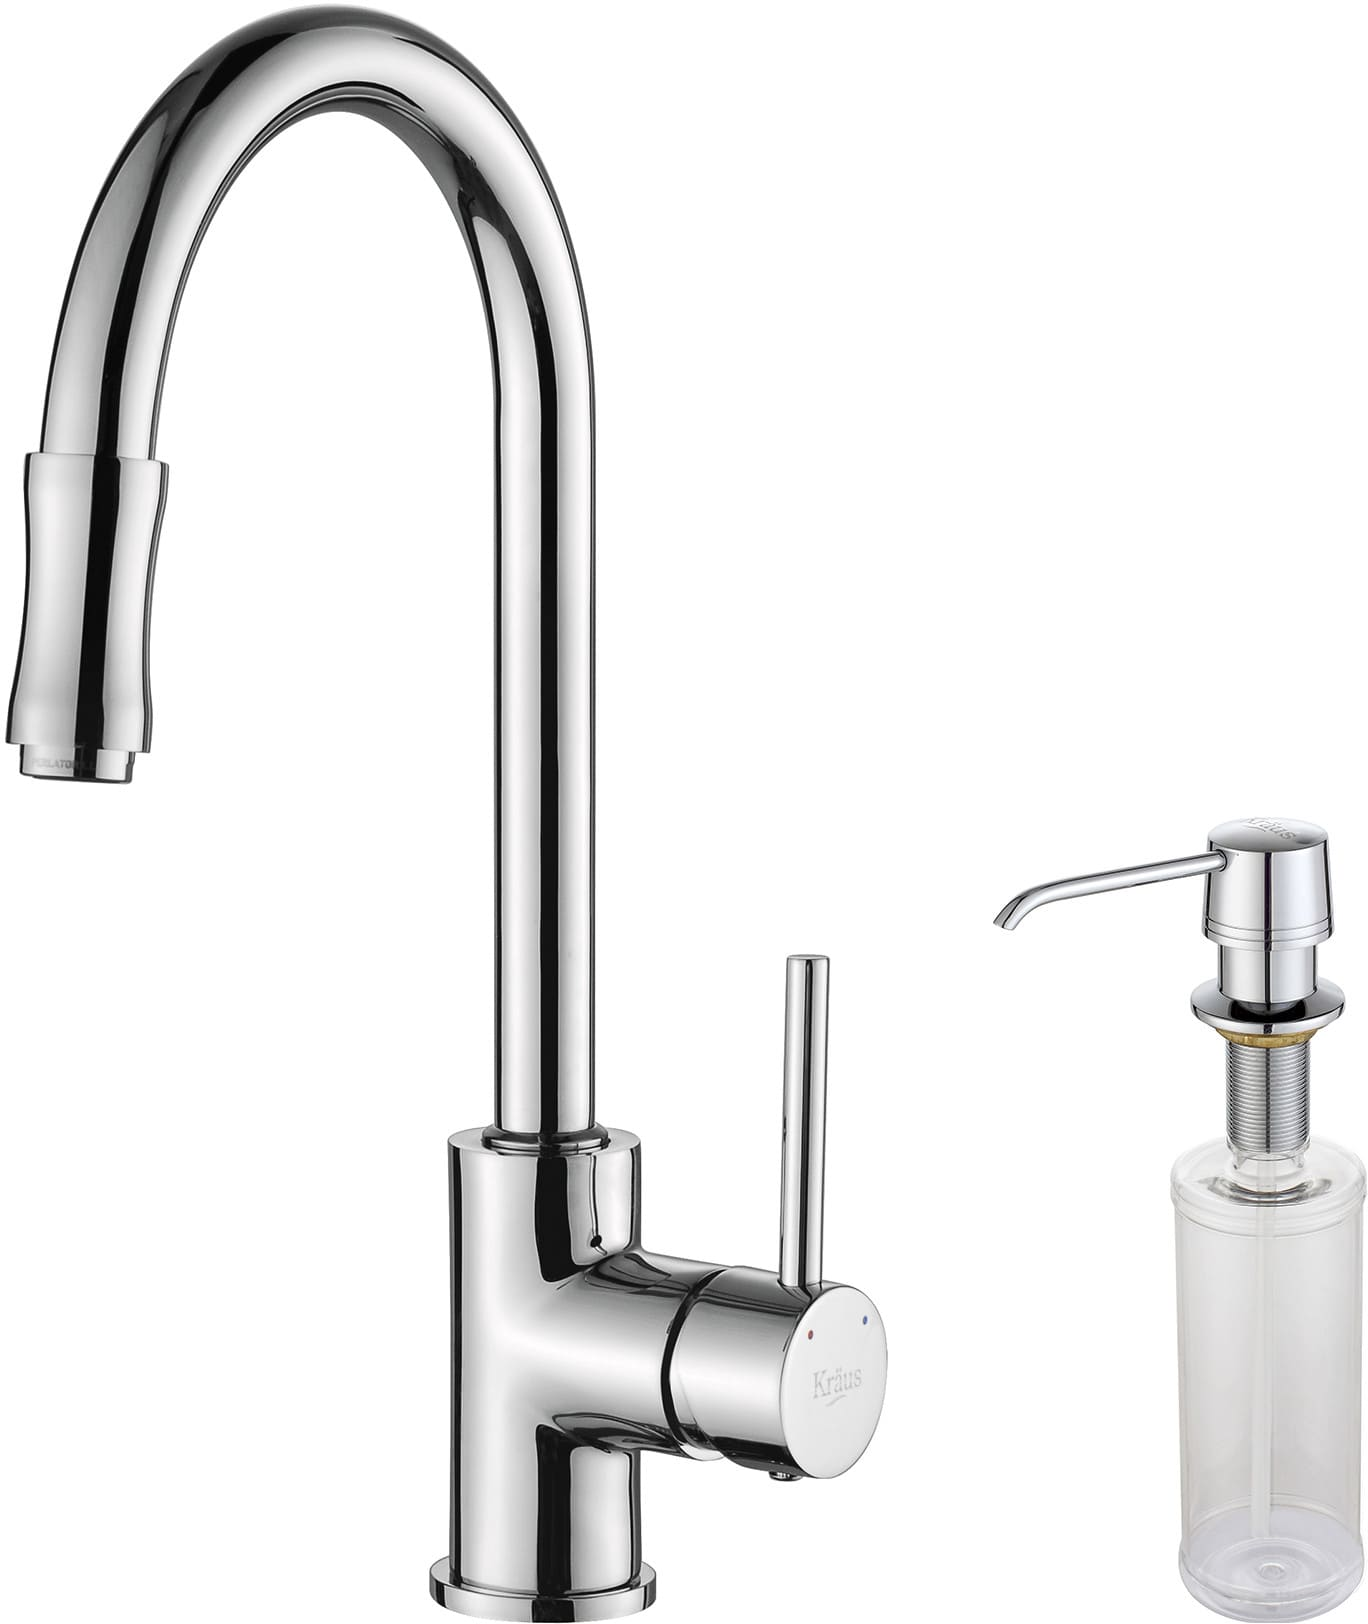 faucets faucet concetto design plus touchless awesome kitchen grohe ideas stainless steel